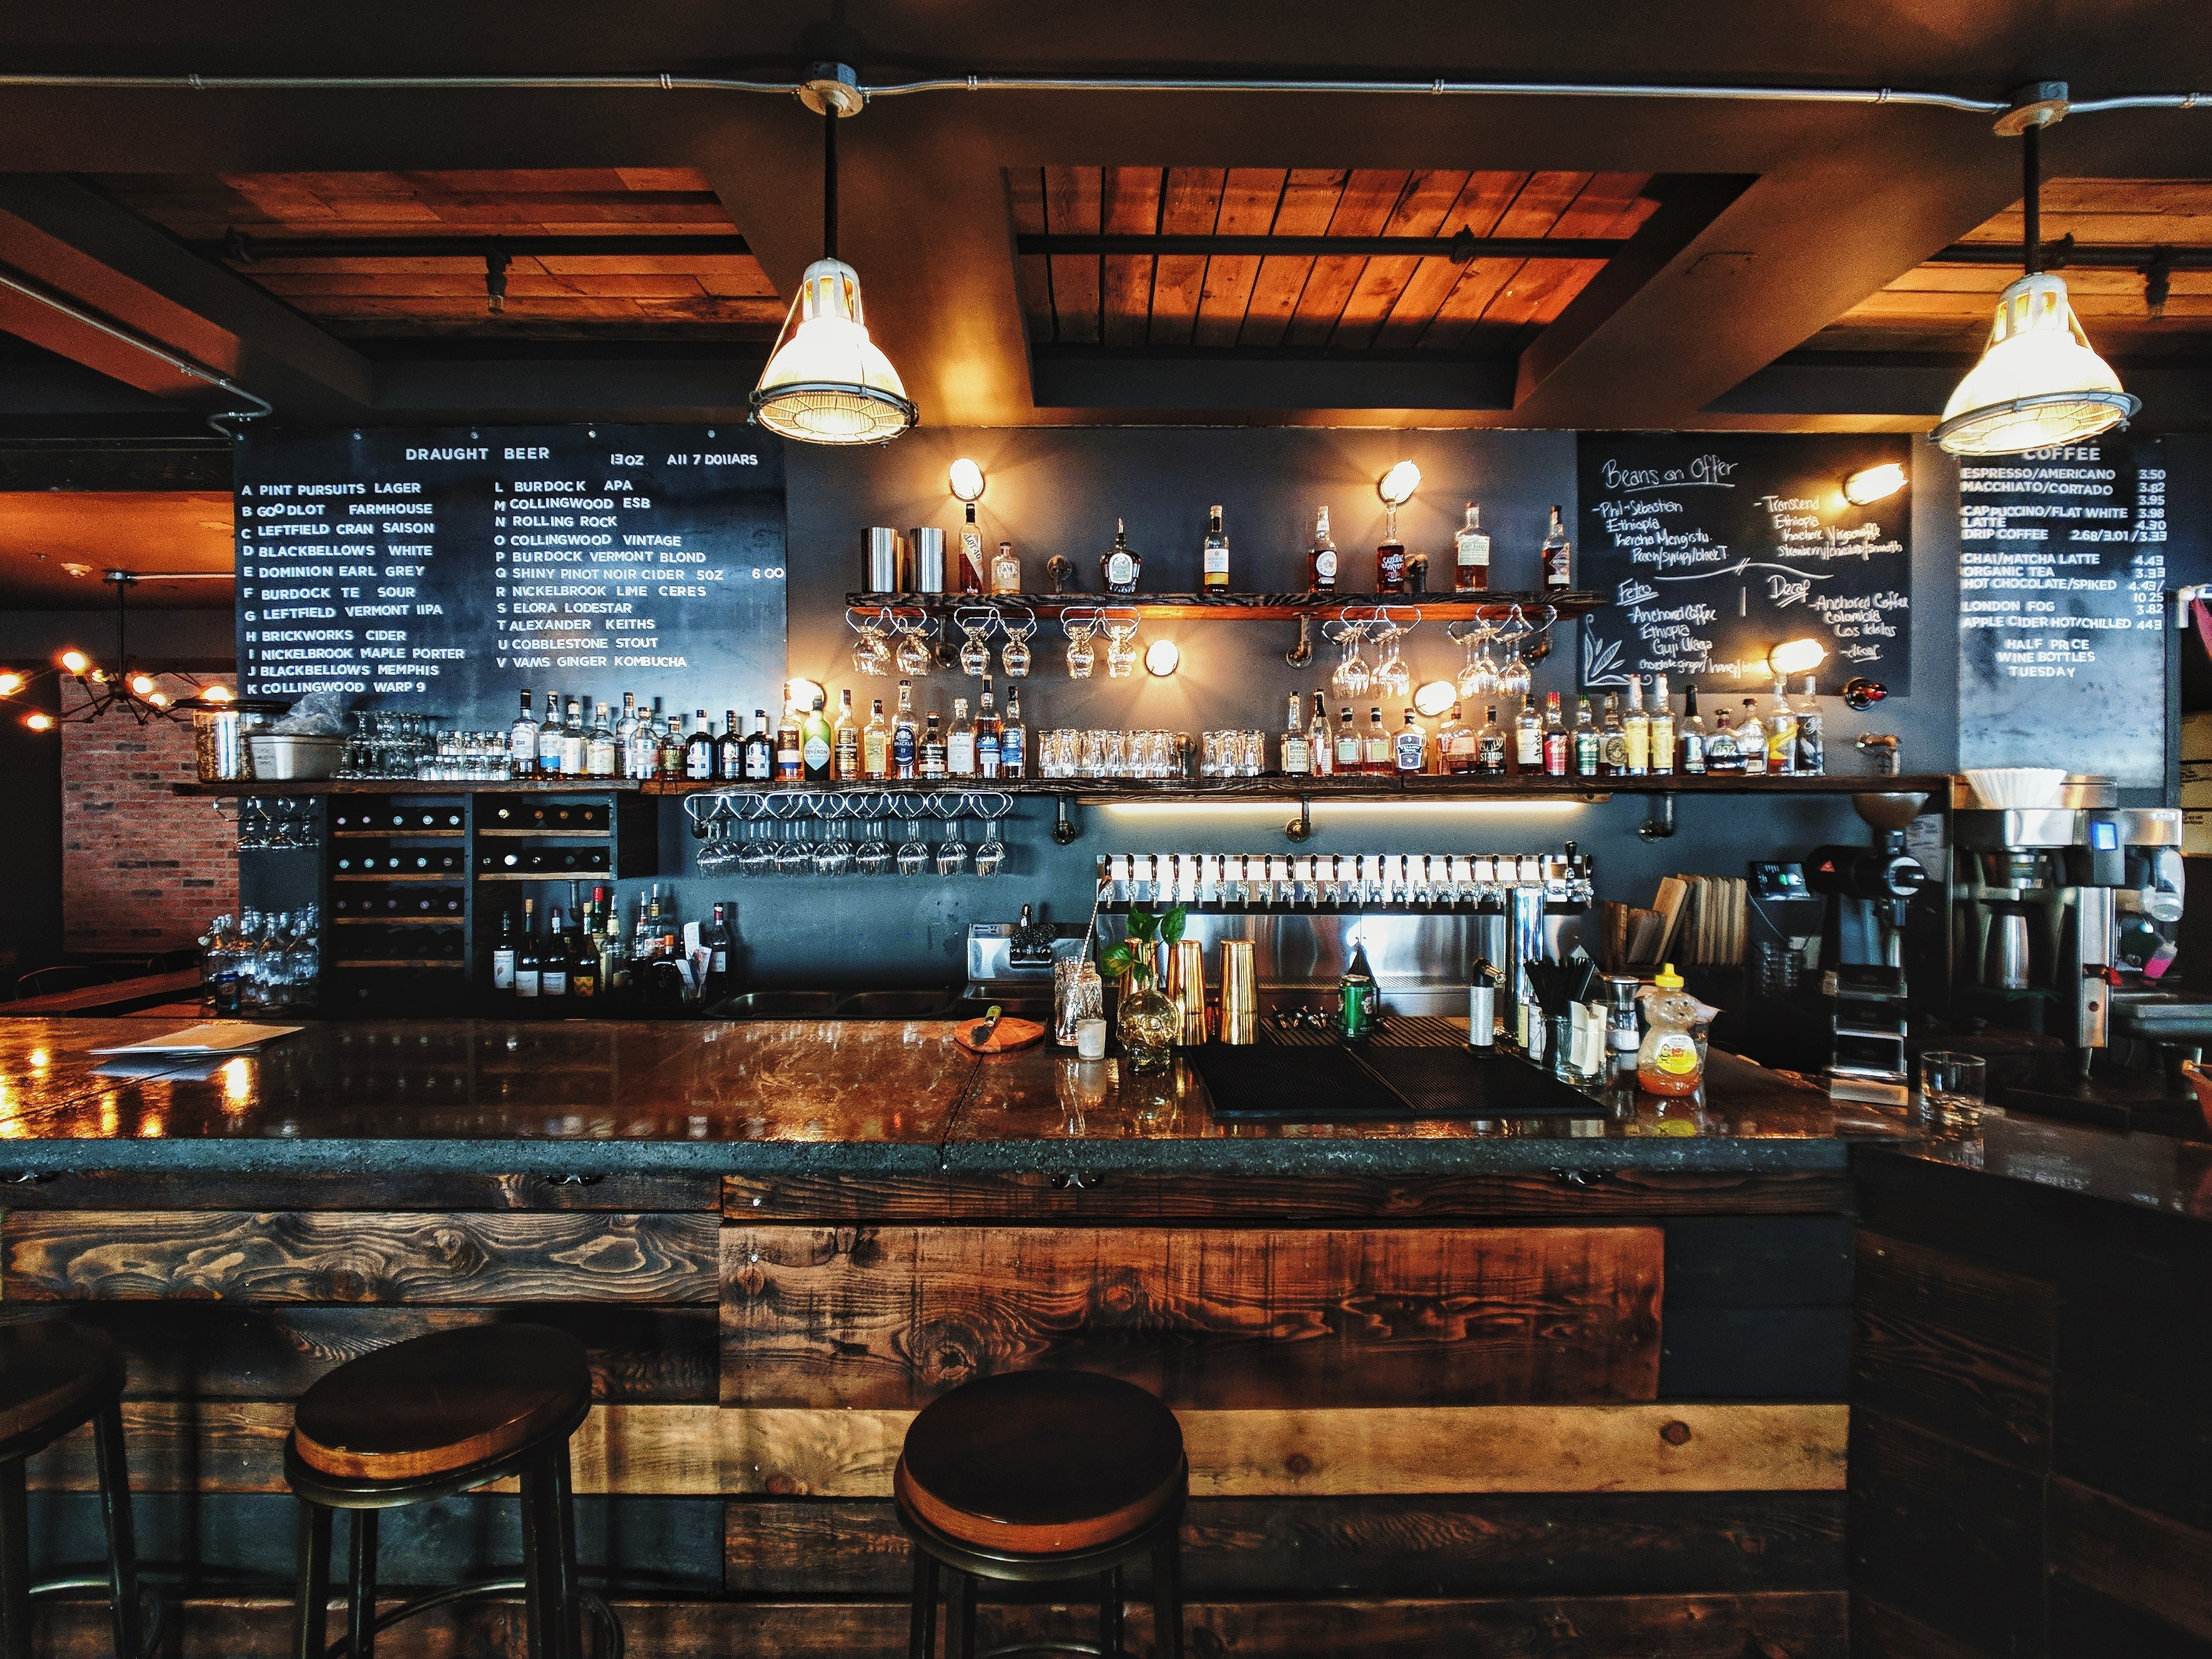 A wooden themed bar | Source: Unsplash.com